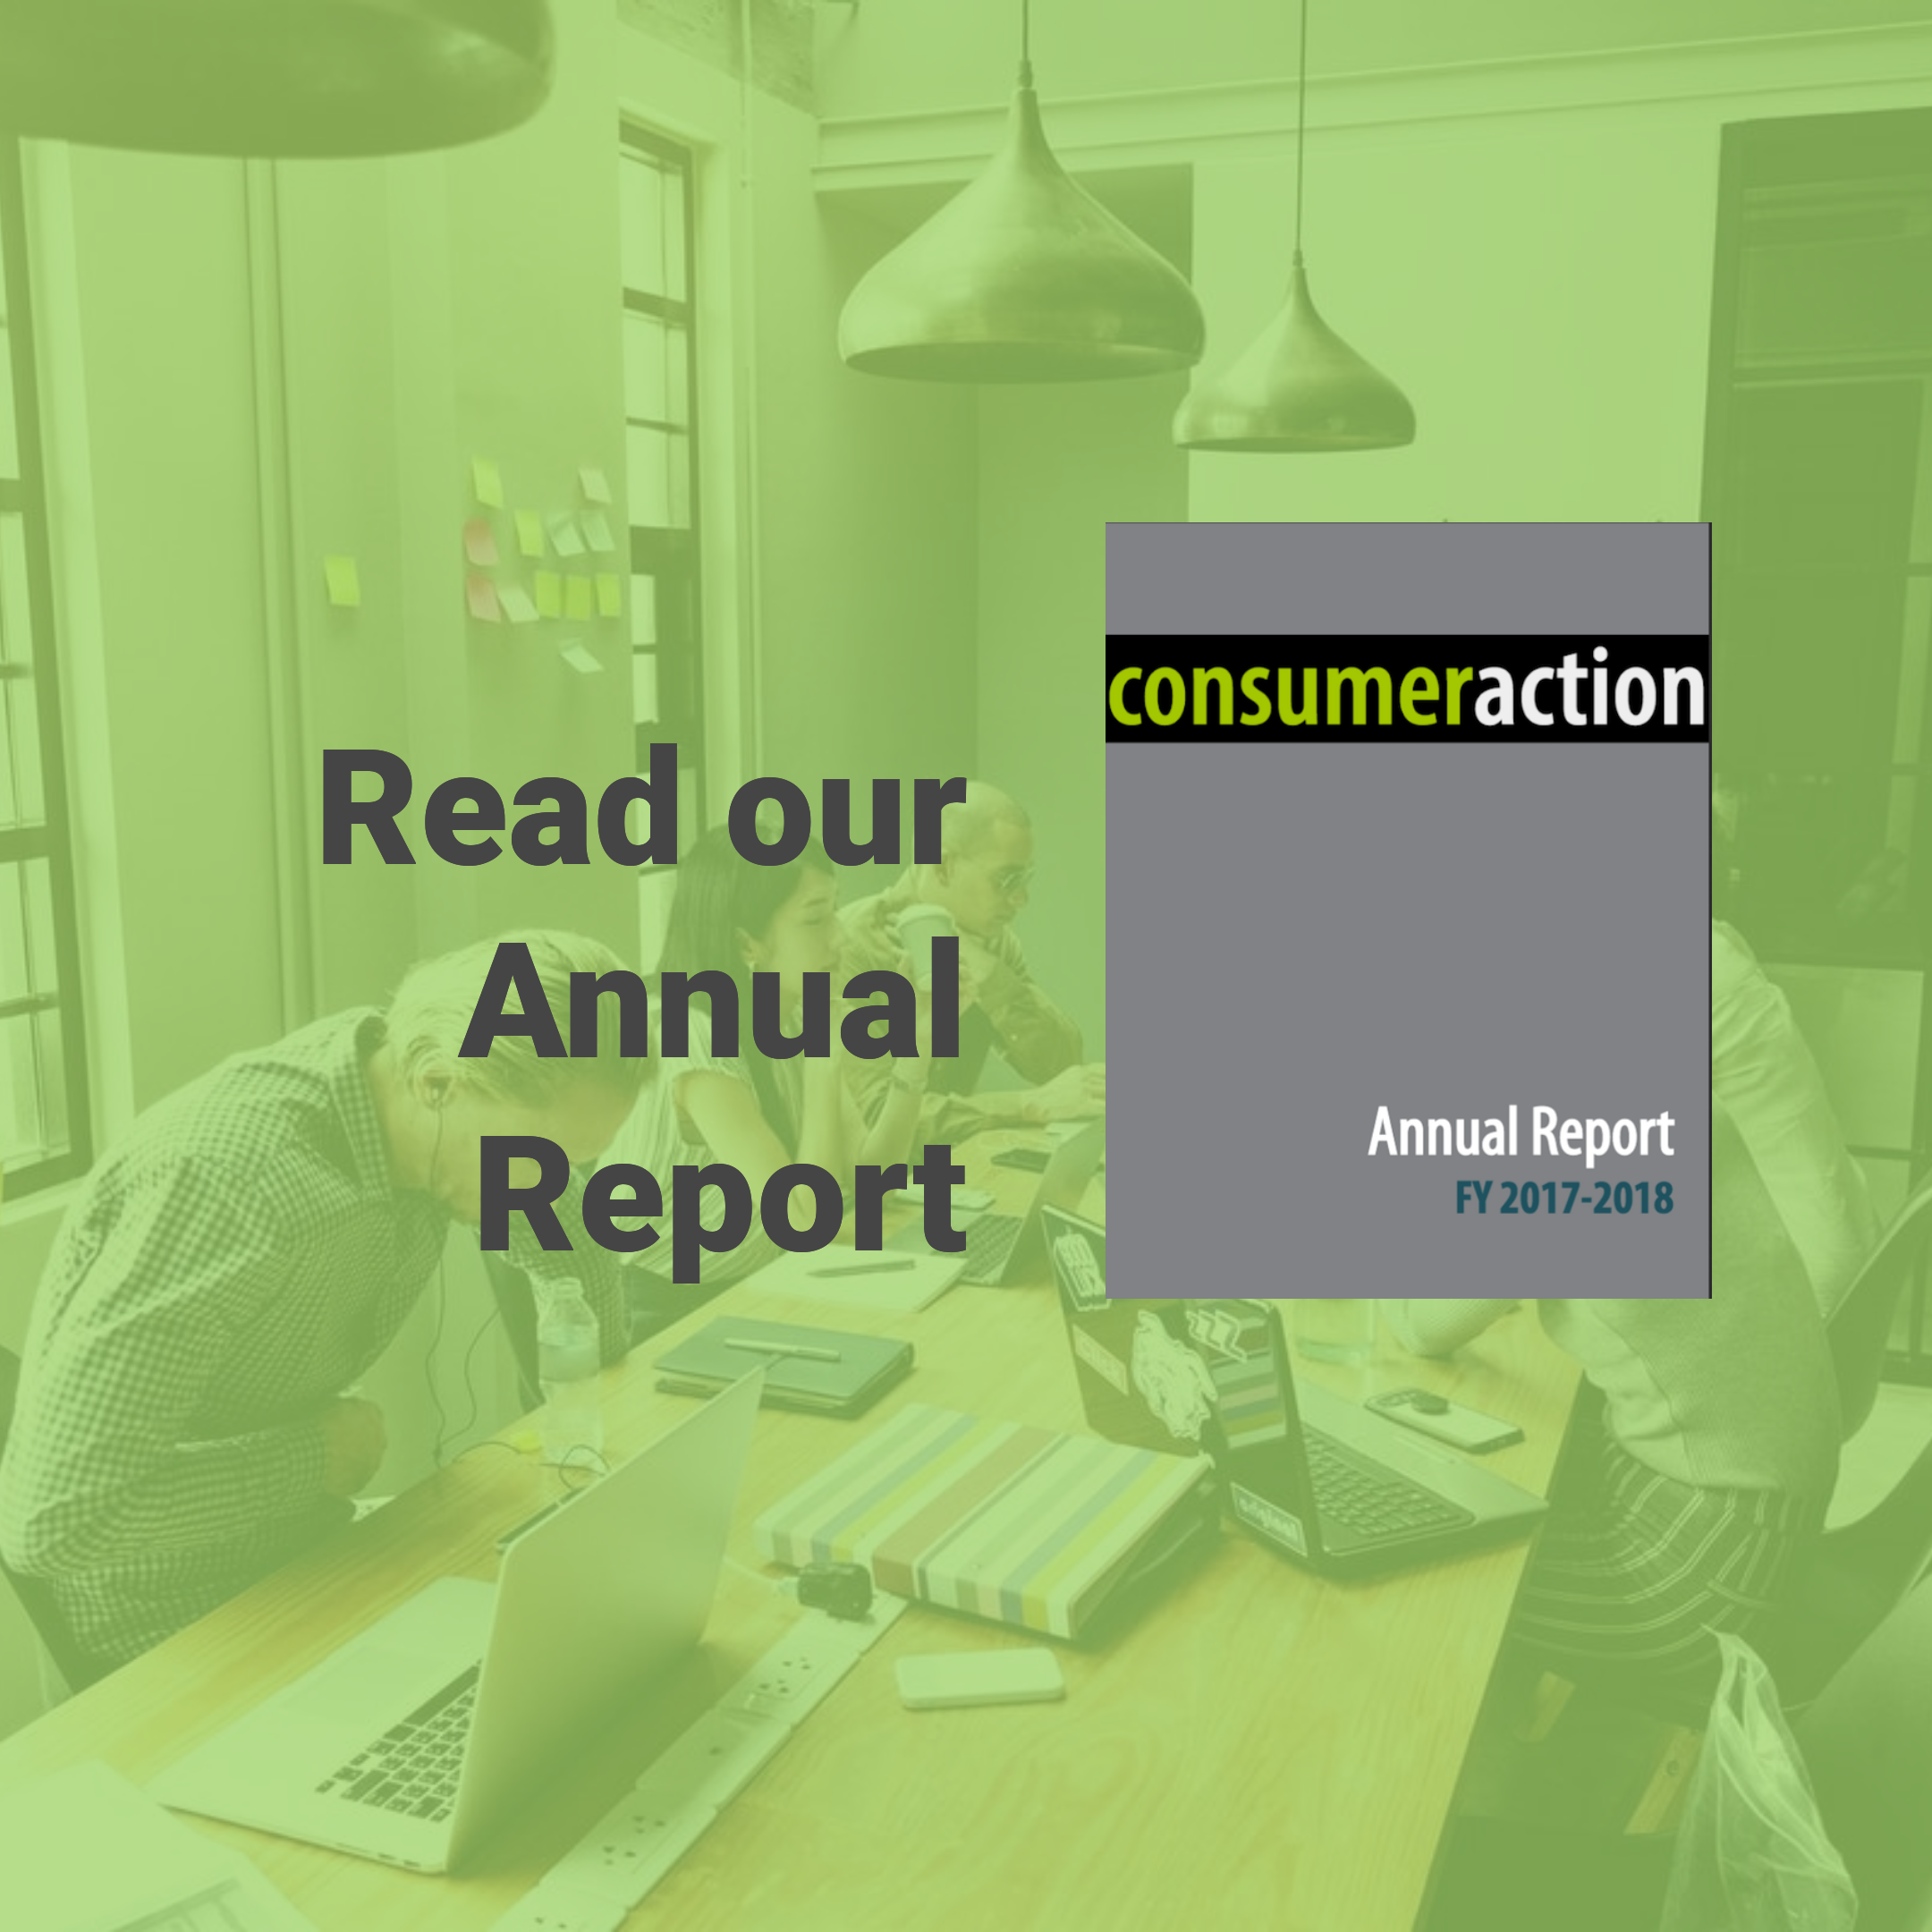 Our 2017-2018 Annual Report is available!